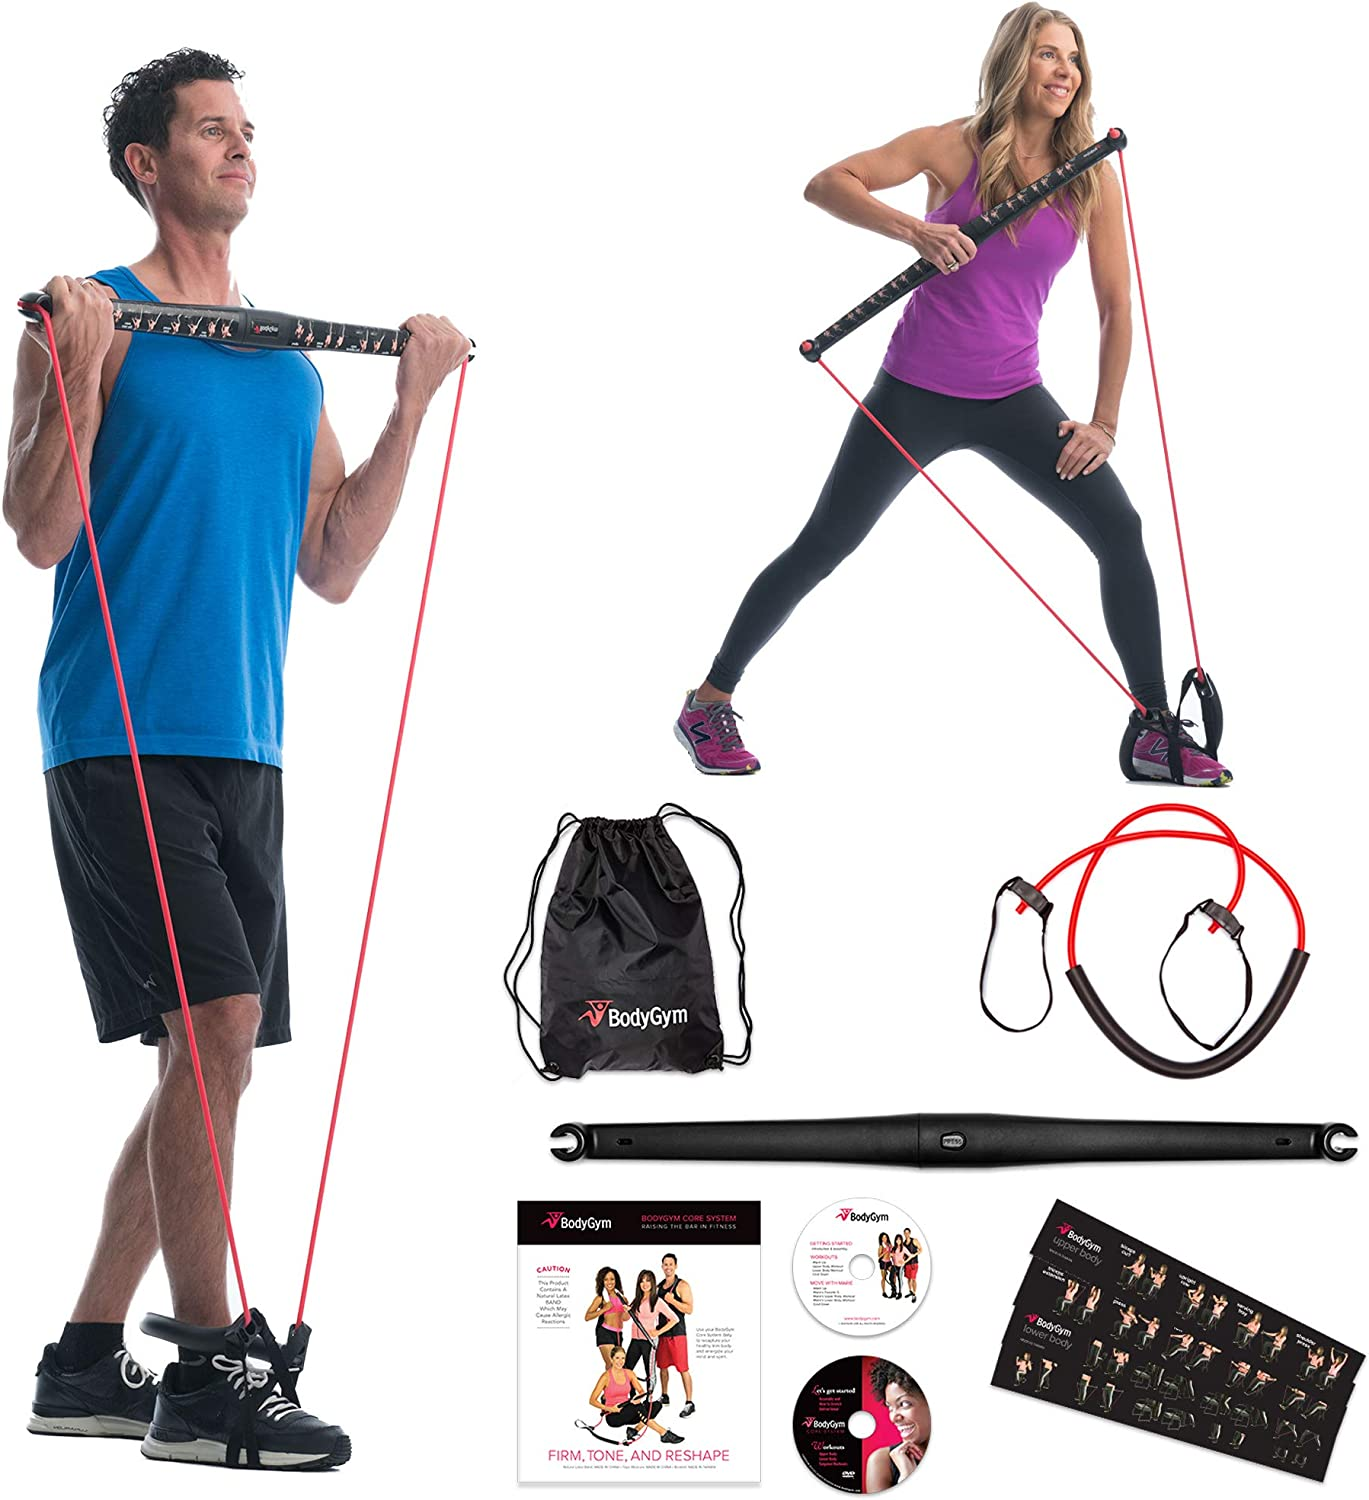 Amazon.com : Bodygym Core System Portable Home Gym - Resistance Trainer All-in-One Band + Bar Kit, Full Body Workout: Improve Fitness, Build Muscle, Strength Exercises with Marie Osmond Workout DVD Included :